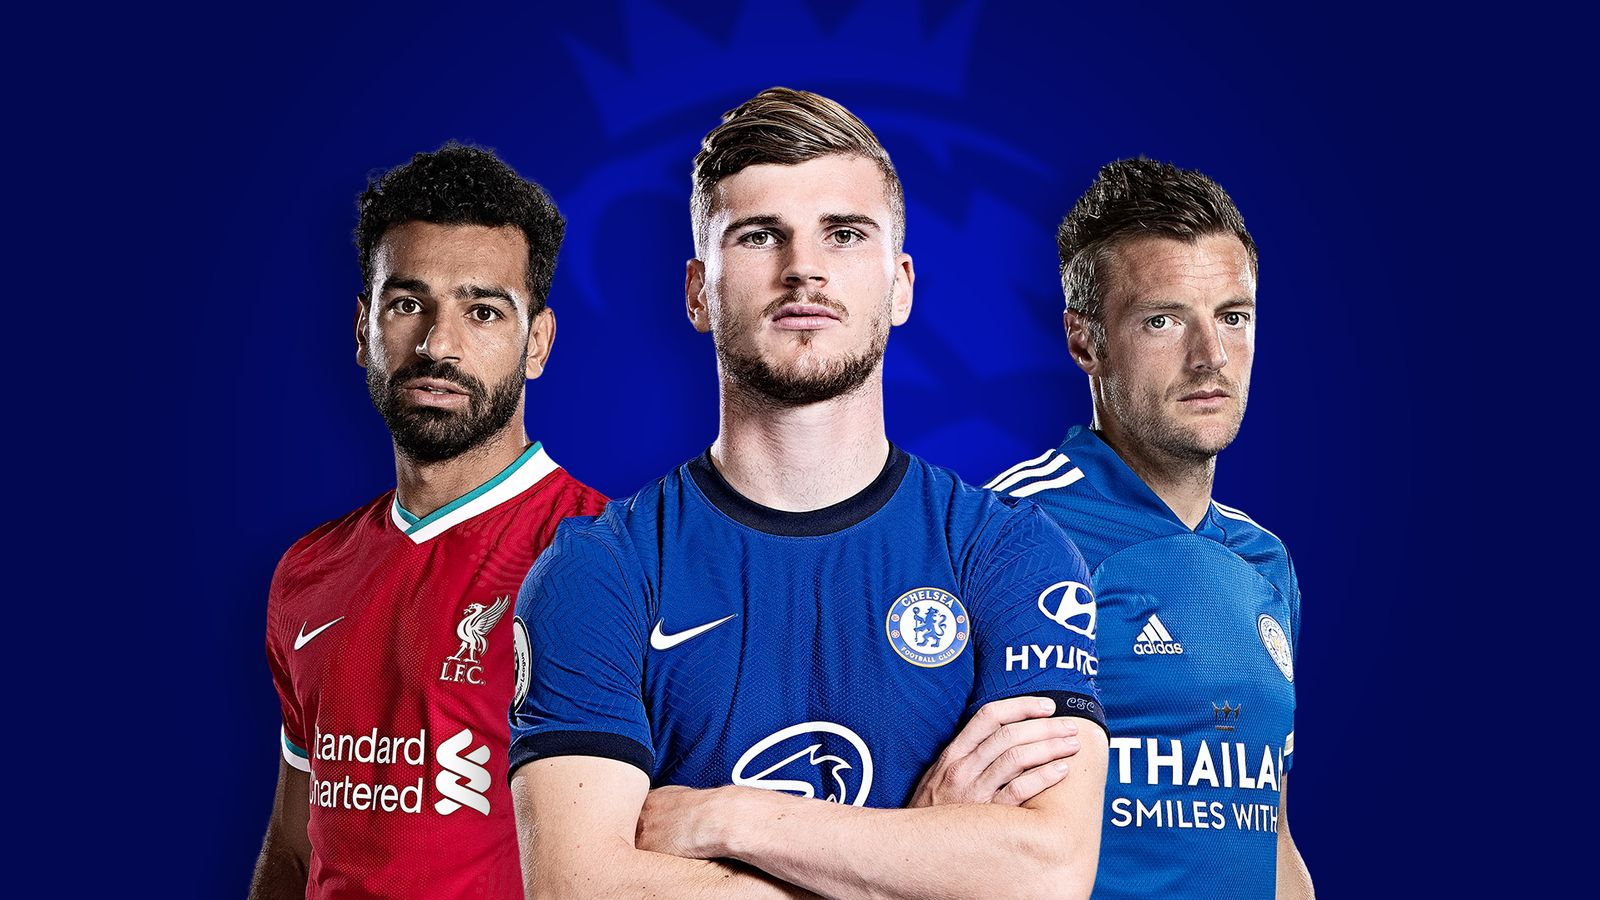 Premier League final day live on Sky Sports: Chelsea, Liverpool, Leicester in top-four battle